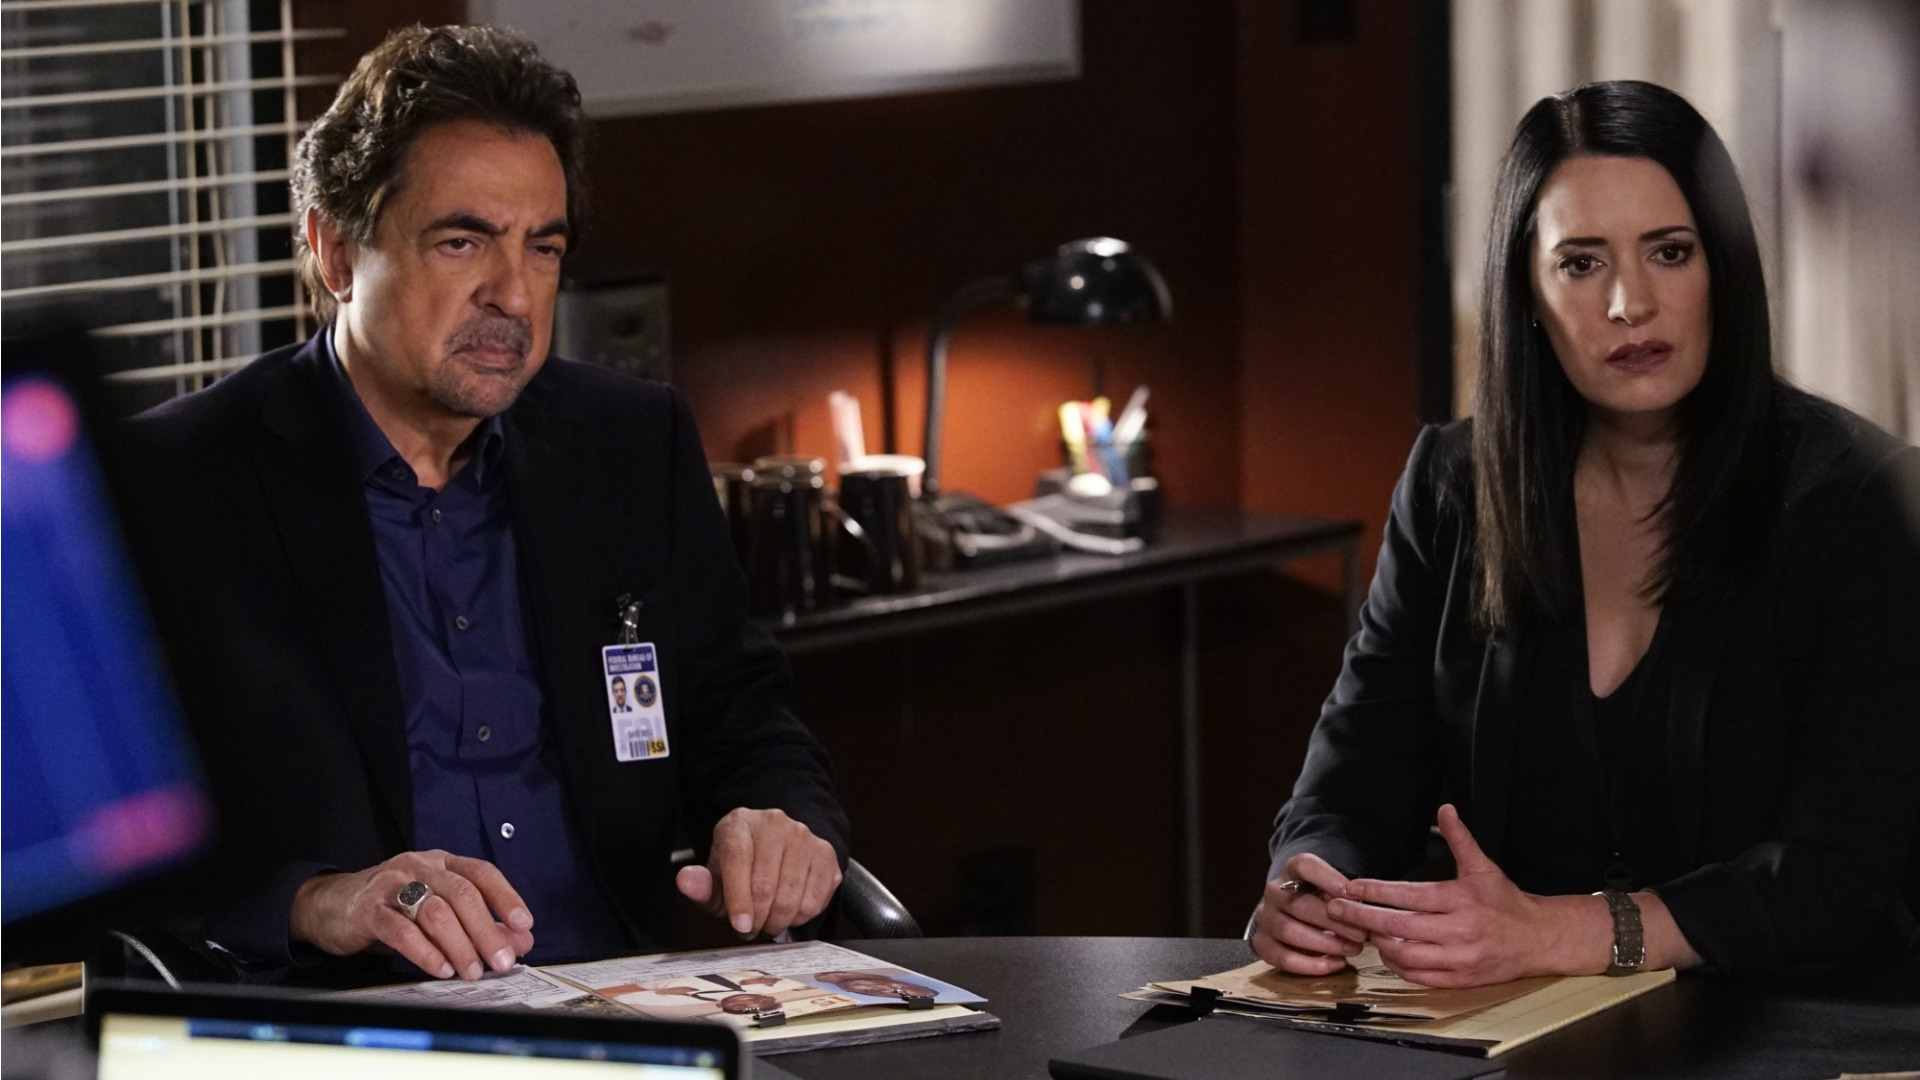 Rossi and Prentiss discuss potential motives.